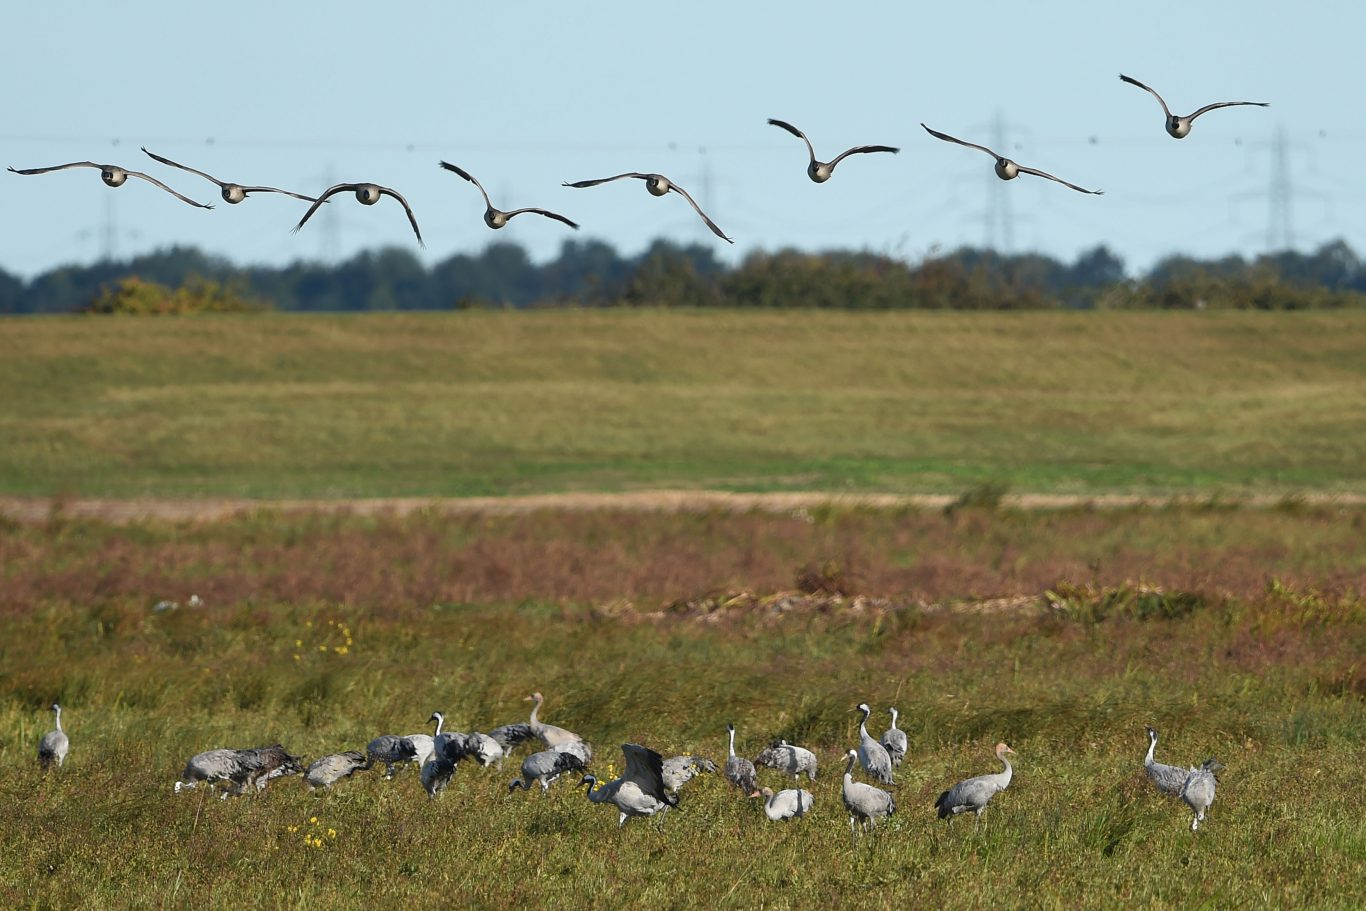 The cranes,  once extinct in the UK, have all flown to the wetland habitat rather than being part of any hand-reared project (Joe Giddens/PA Wire)